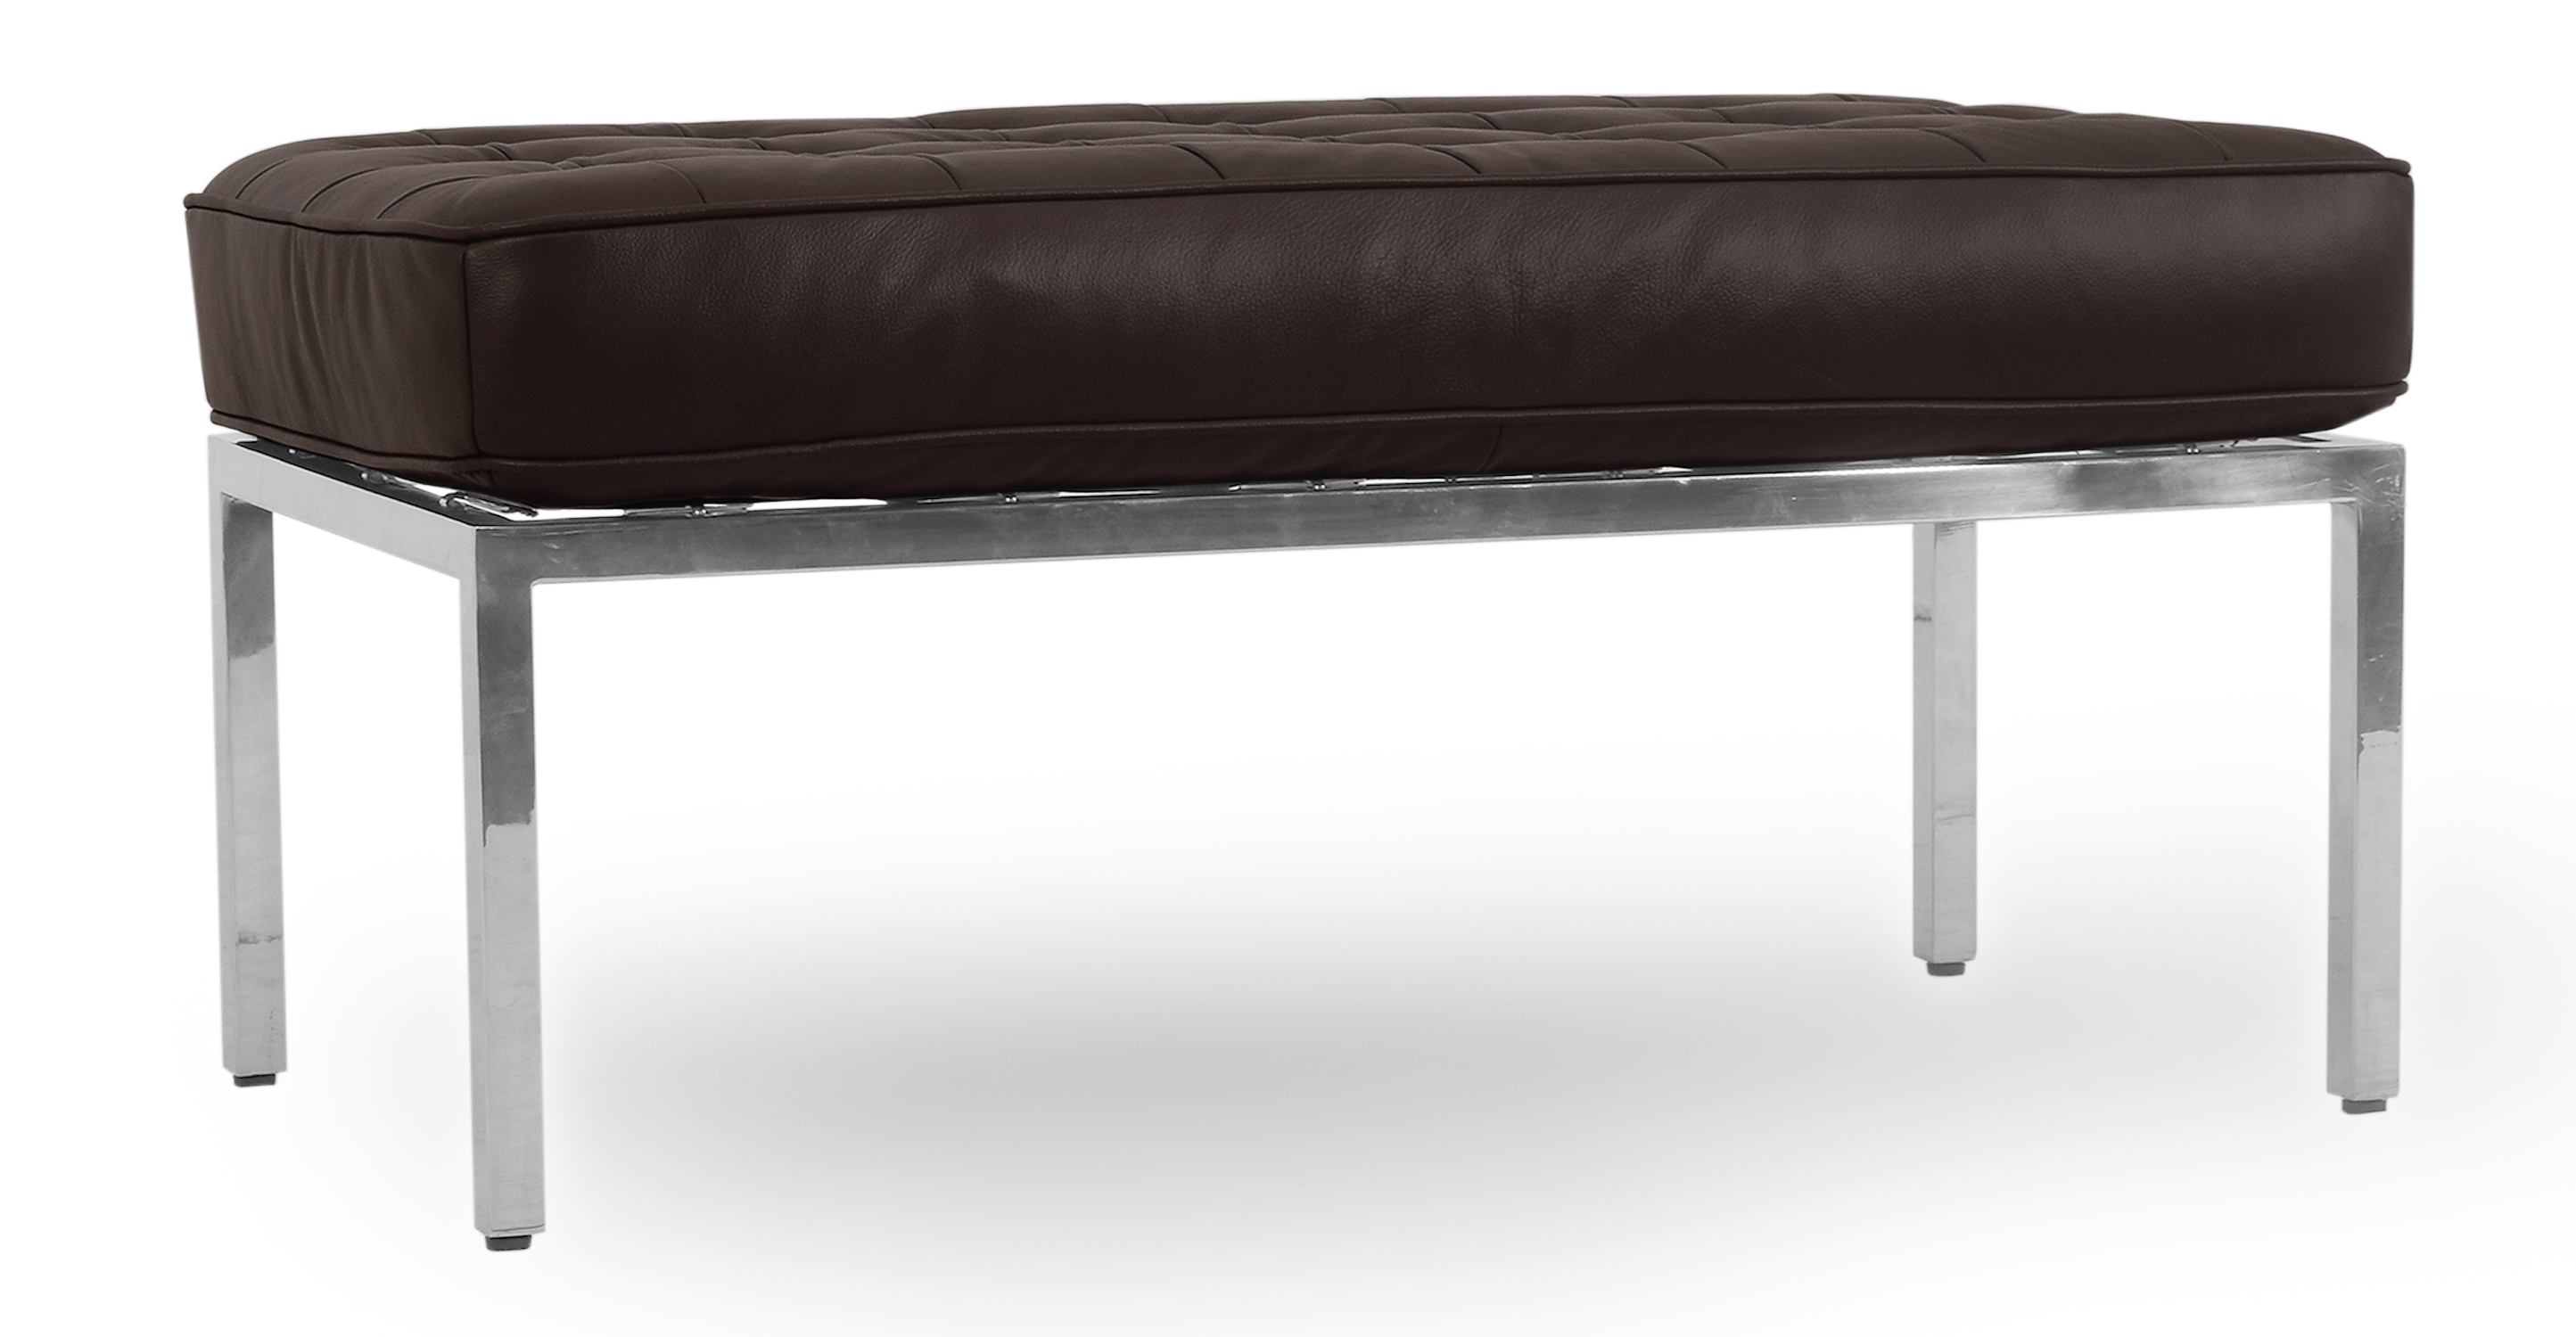 "Florence 36"" Leather Bench, Brown Top Grain Semi Aniline"